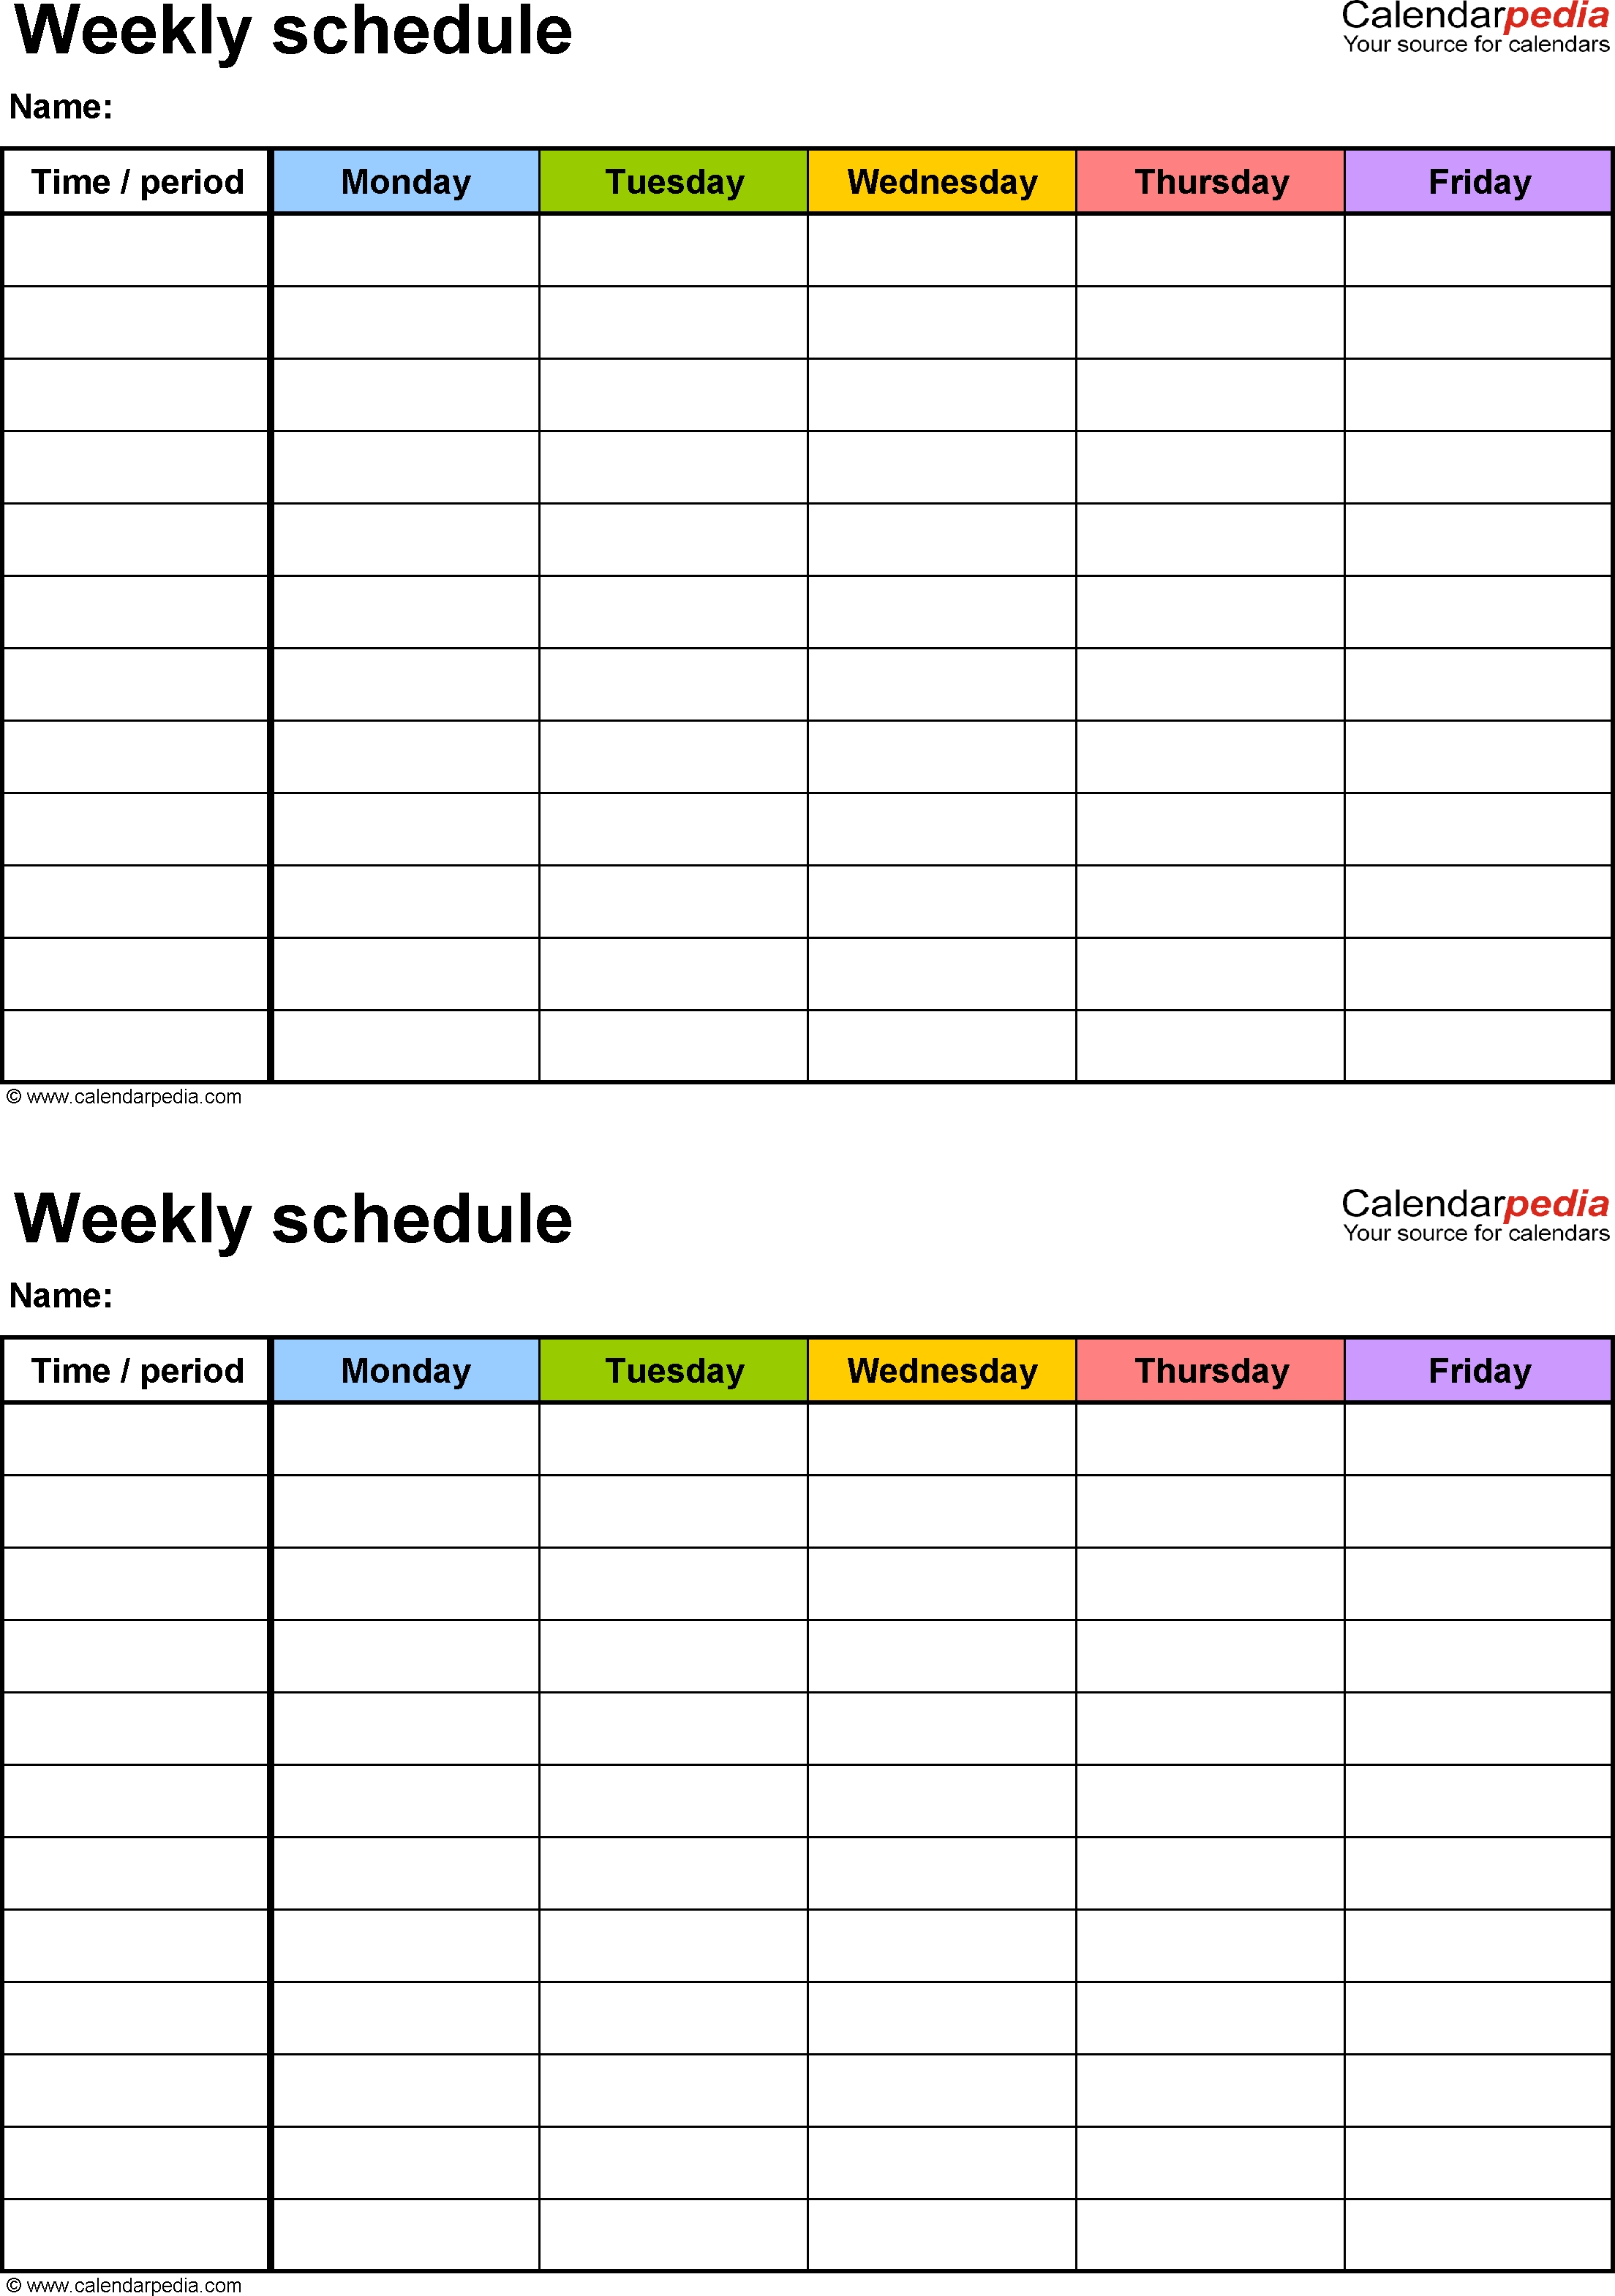 Free Weekly Schedule Templates For Word - 18 Templates-Weekly Calendar Template Monday To Friday